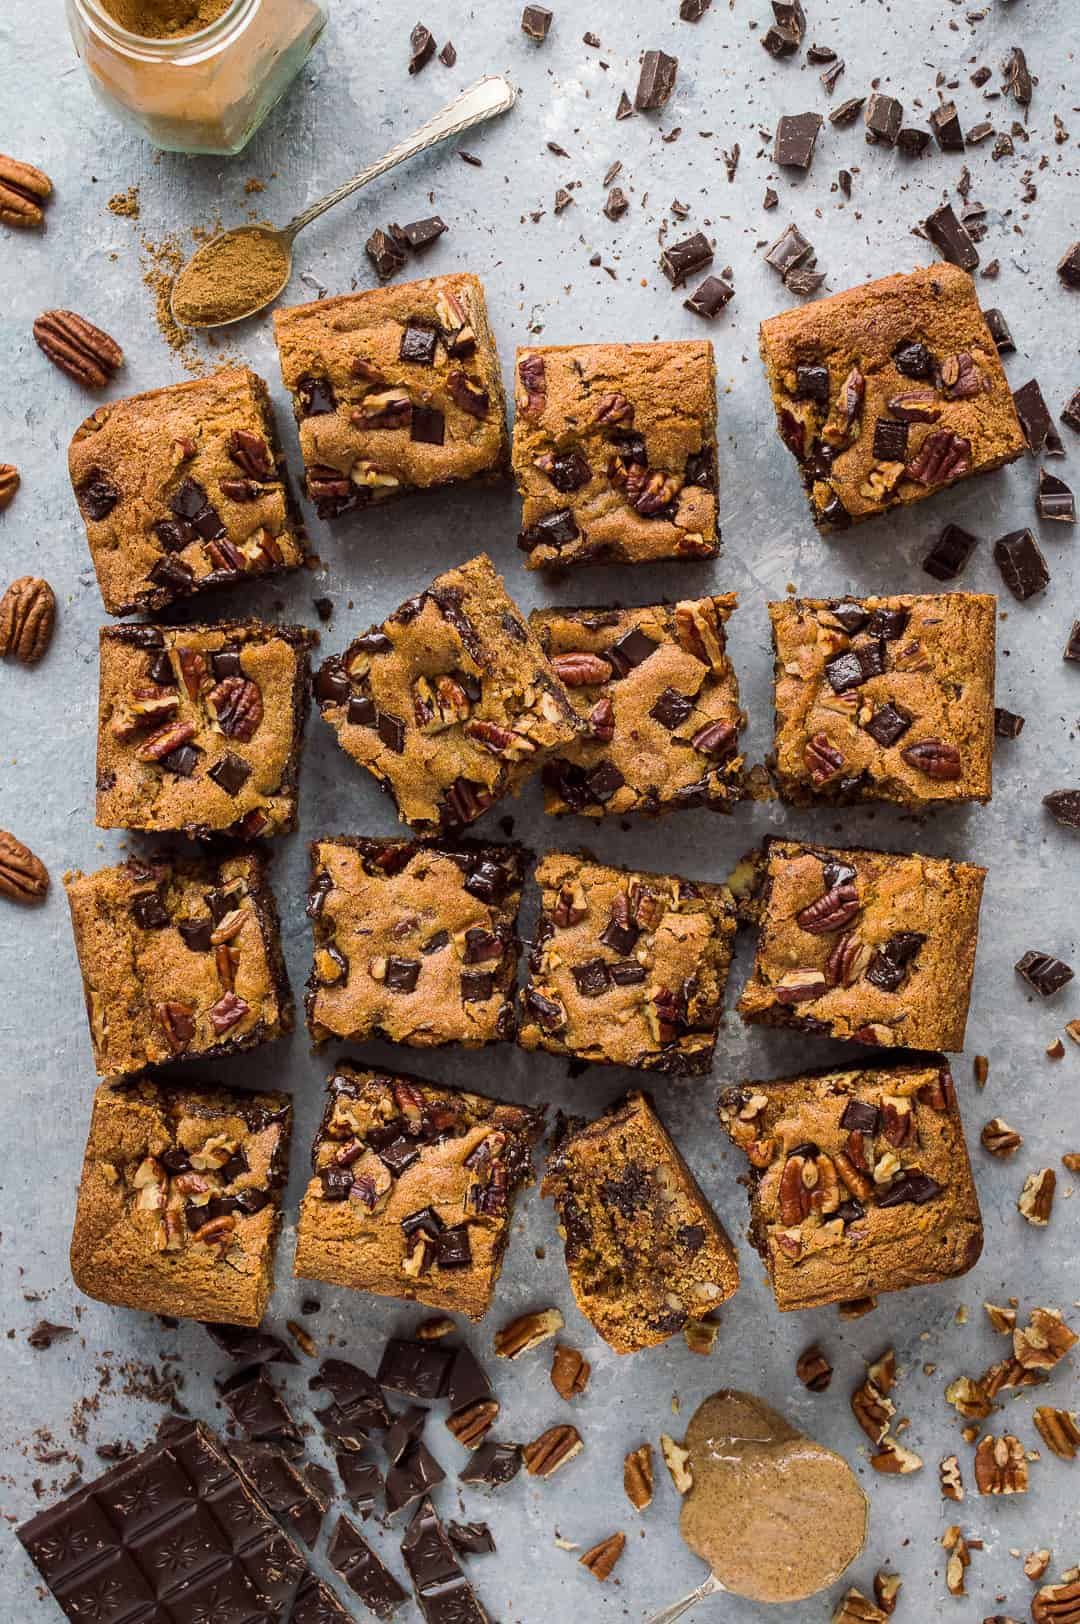 Vegan peanut butter chocolate chip pecan bars - incredibly moreish vegan peanut butter snack bars loaded with chocolate chips and pecans.